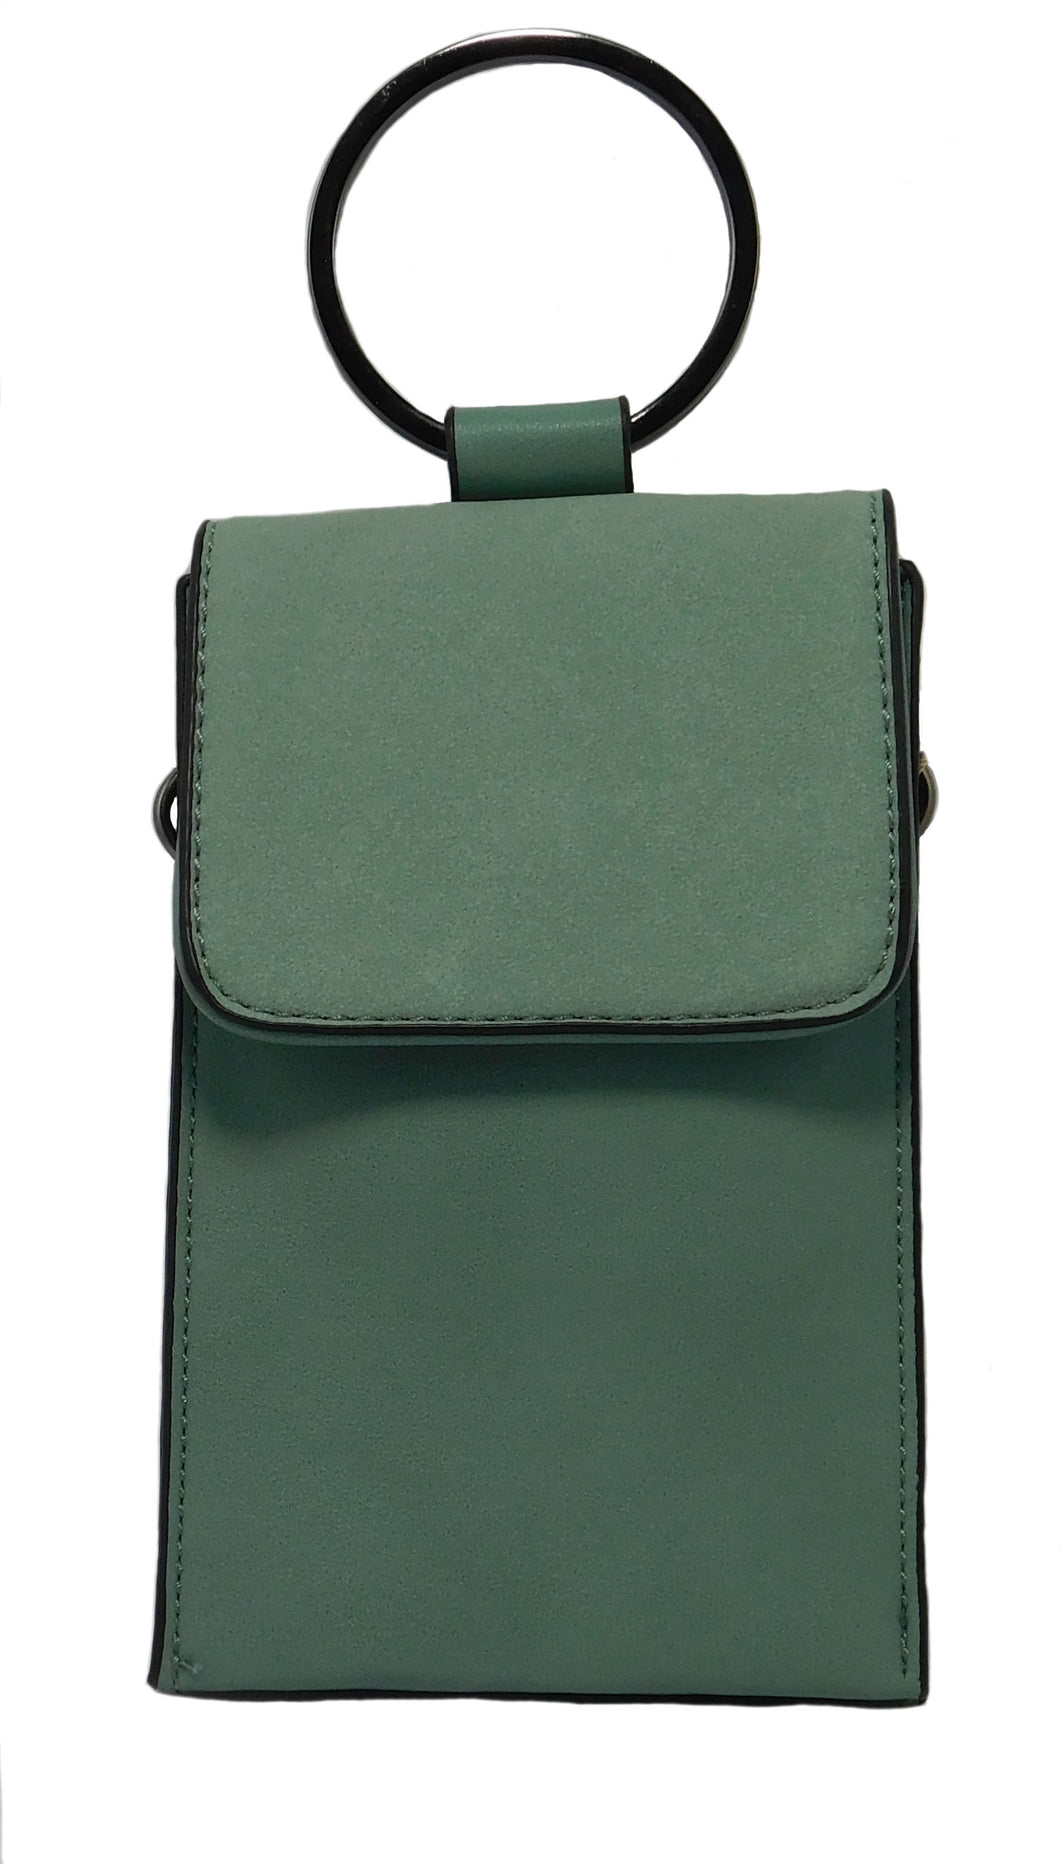 Kaylee top handle cellphone pouch with ring handle (Seafoam)